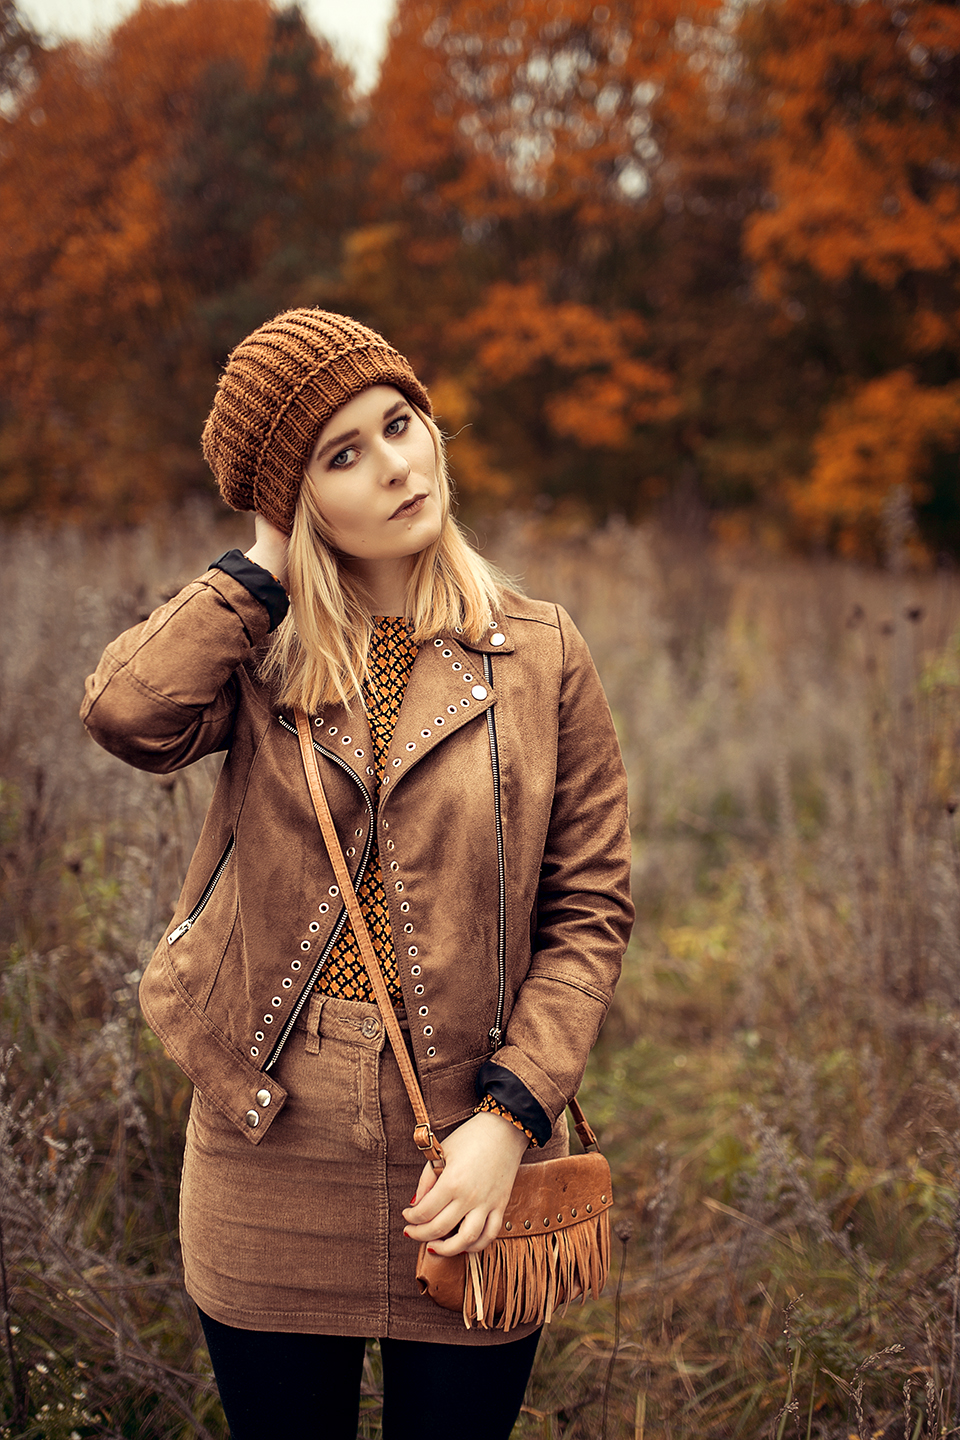 herbst outfit ton in ton hellbraun